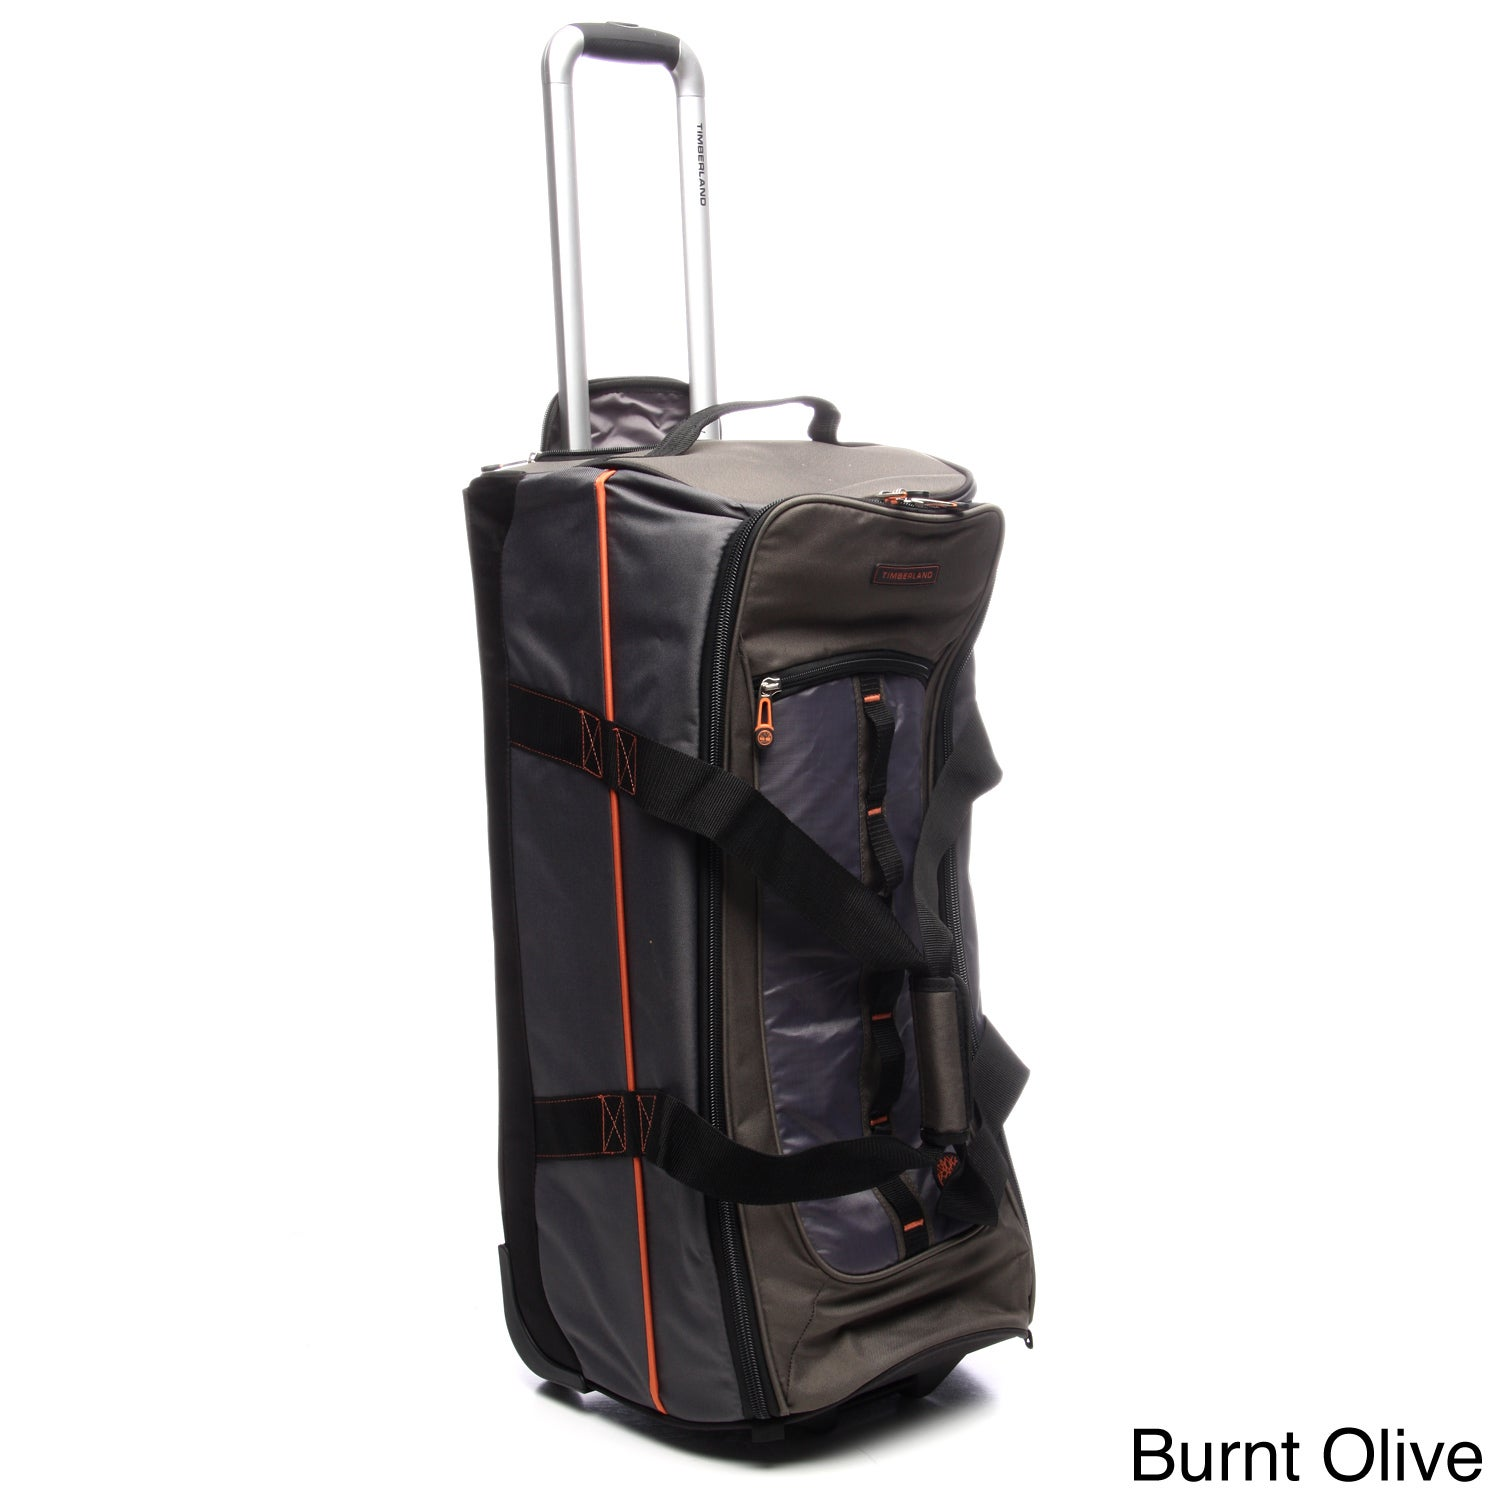 7bd28b8abb1 Shop Timberland Jay Peak 28-inch Wheeled Upright Duffel Bag - Free Shipping  Today - Overstock - 7731922